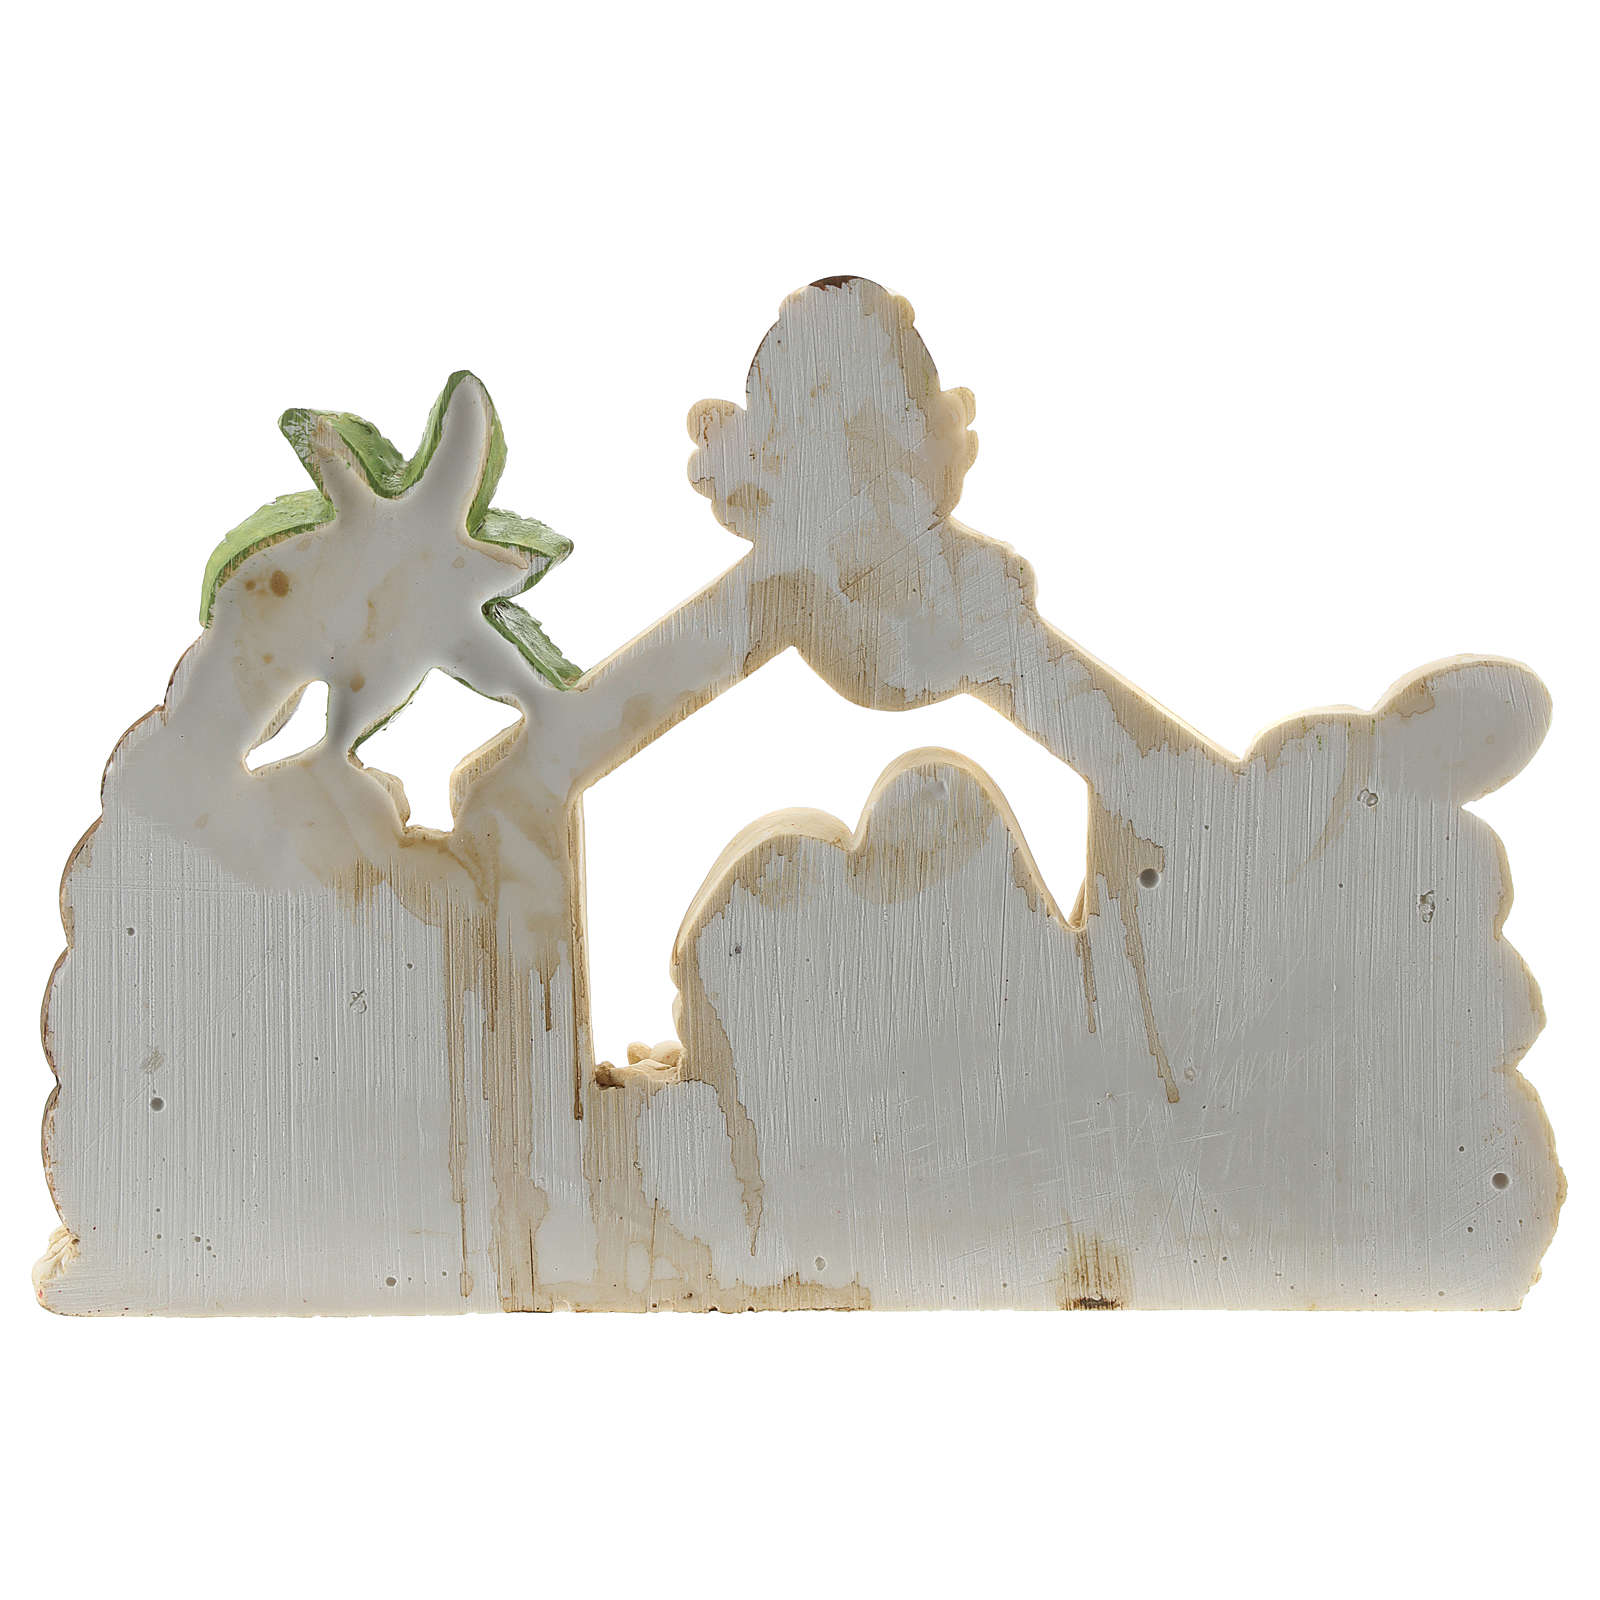 Nativity scene with hut made of resin with 9 characters 20x15 cm, children's line 4